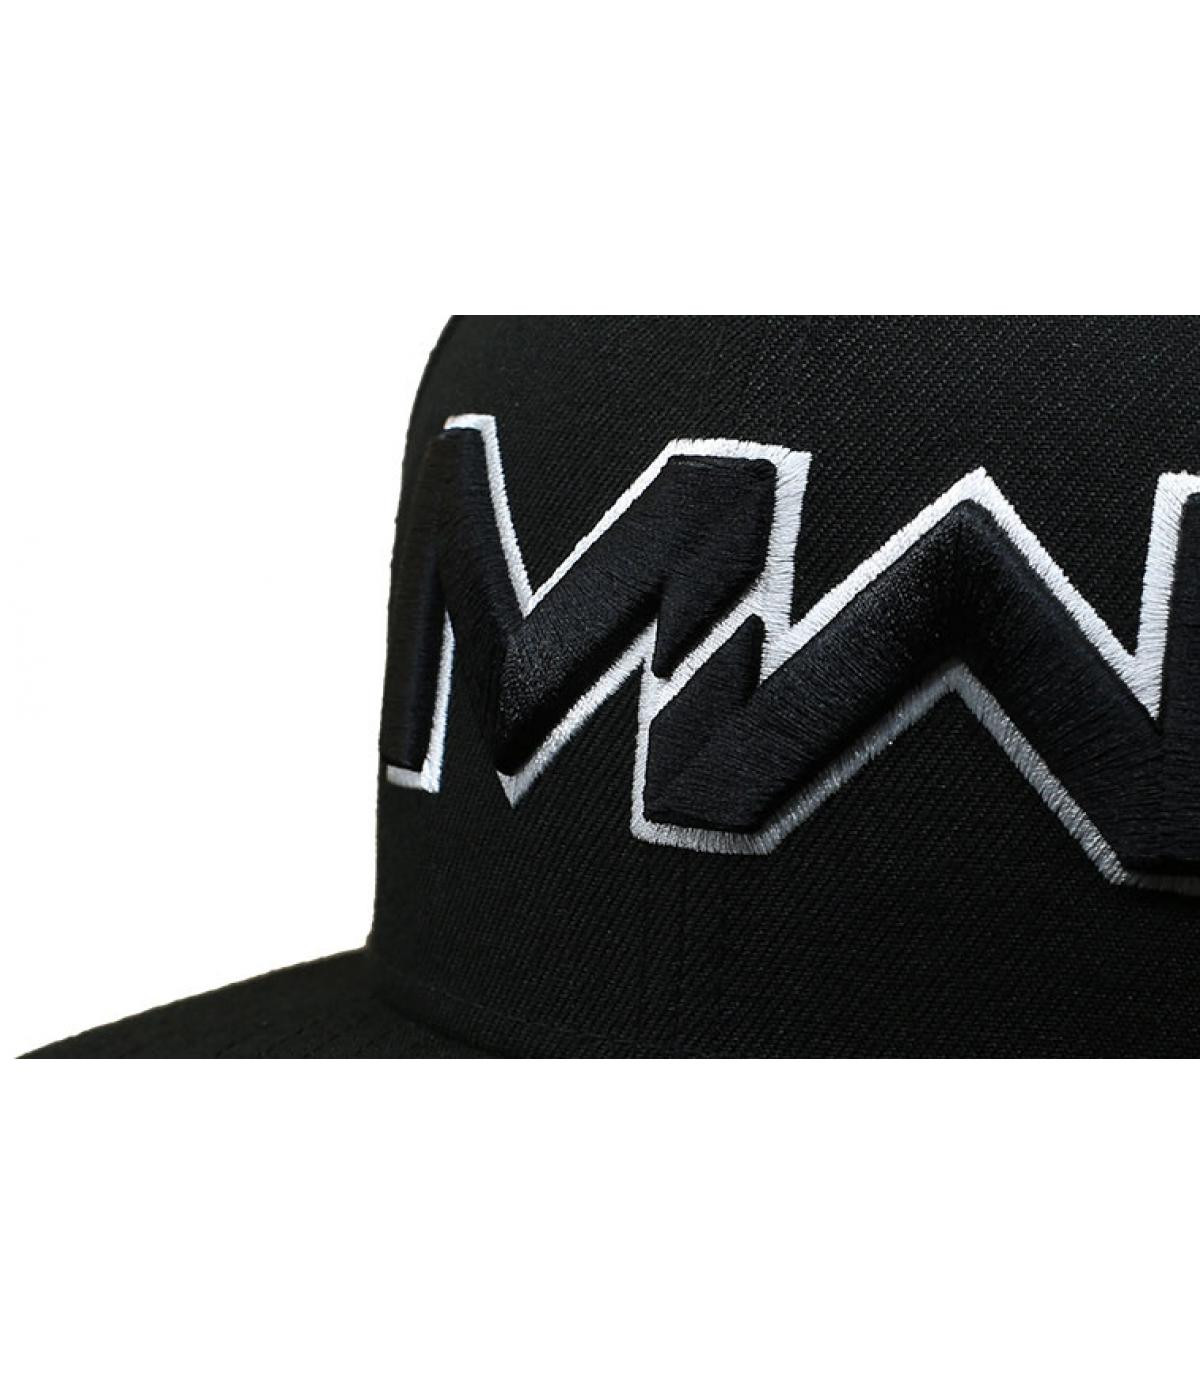 Détails Snapback Call of Duty MW - image 3